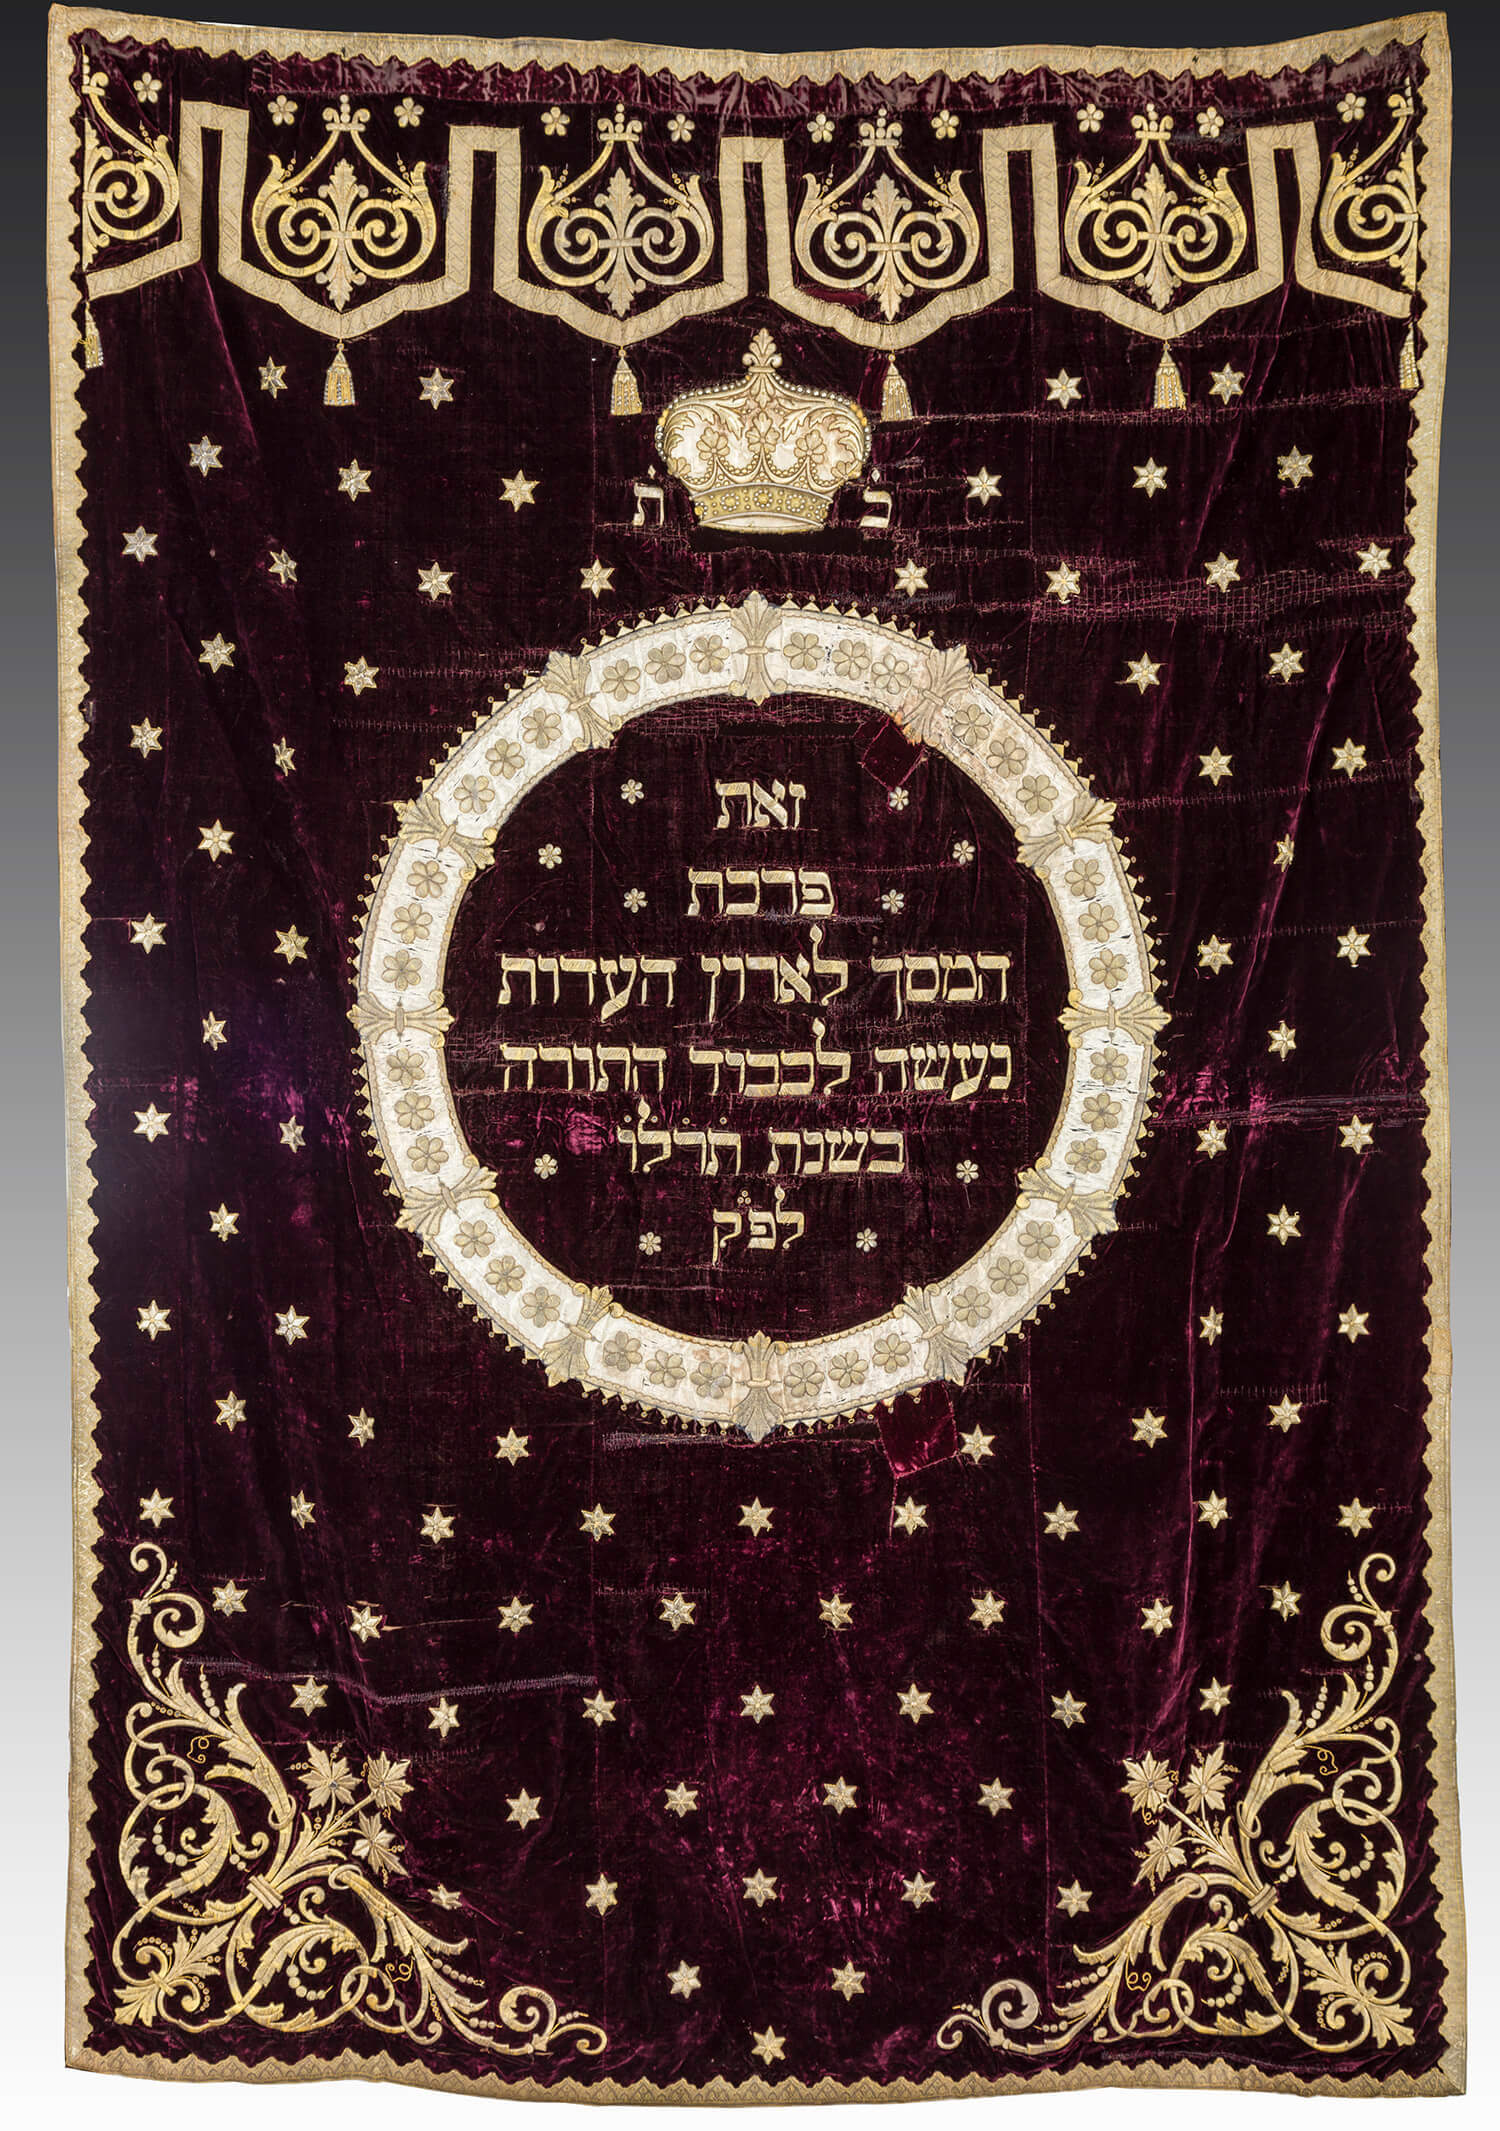 029. A LARGE VELVET AND SILVER THREAD TORAH ARK COVER